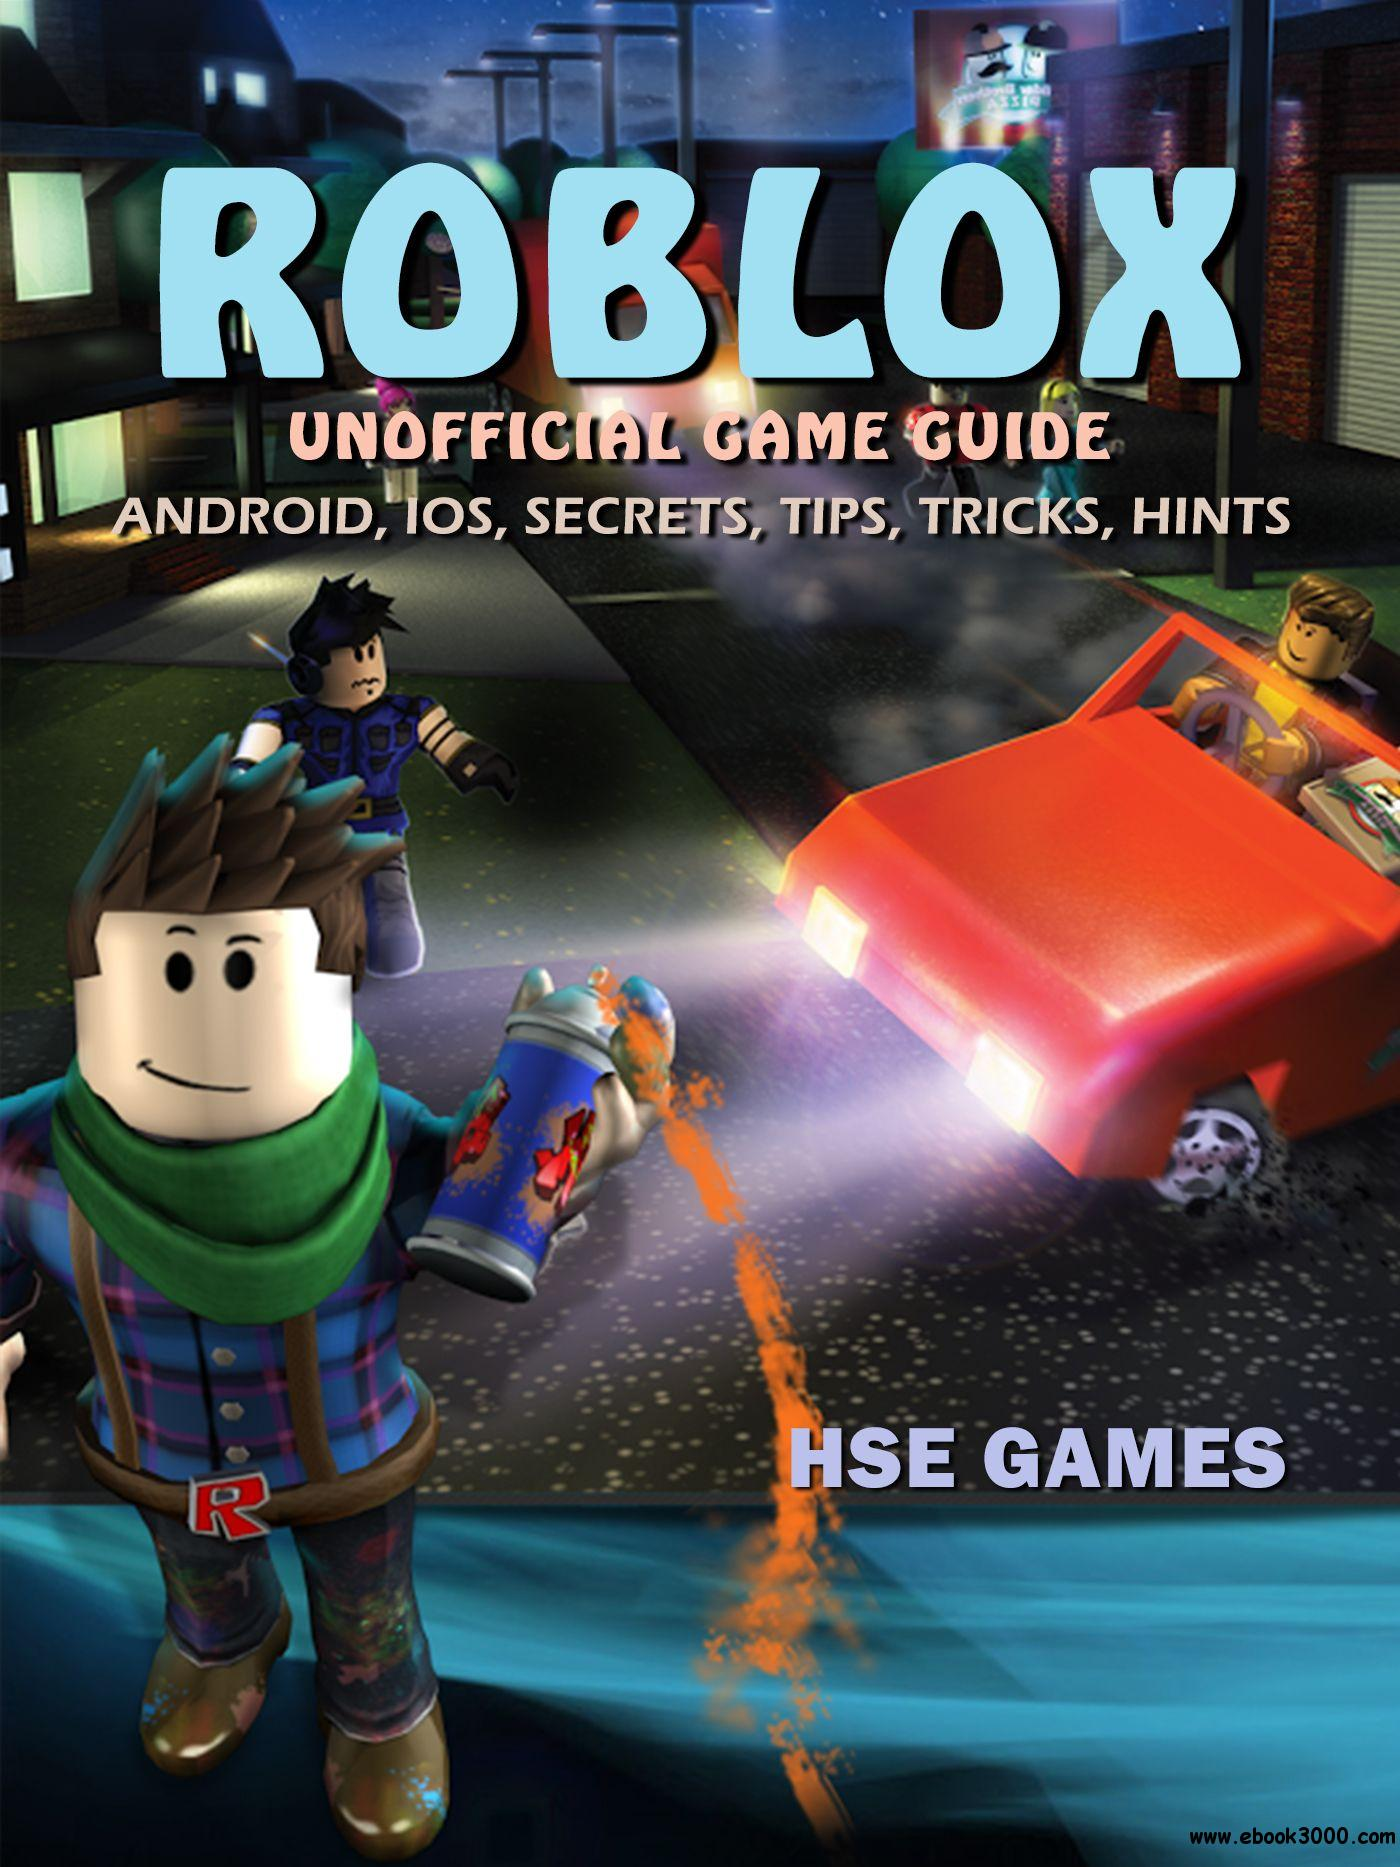 Roblox Unofficial Game Guide: Android, Ios, Secrets, Tips, Tricks, Hints, 3rd Edition